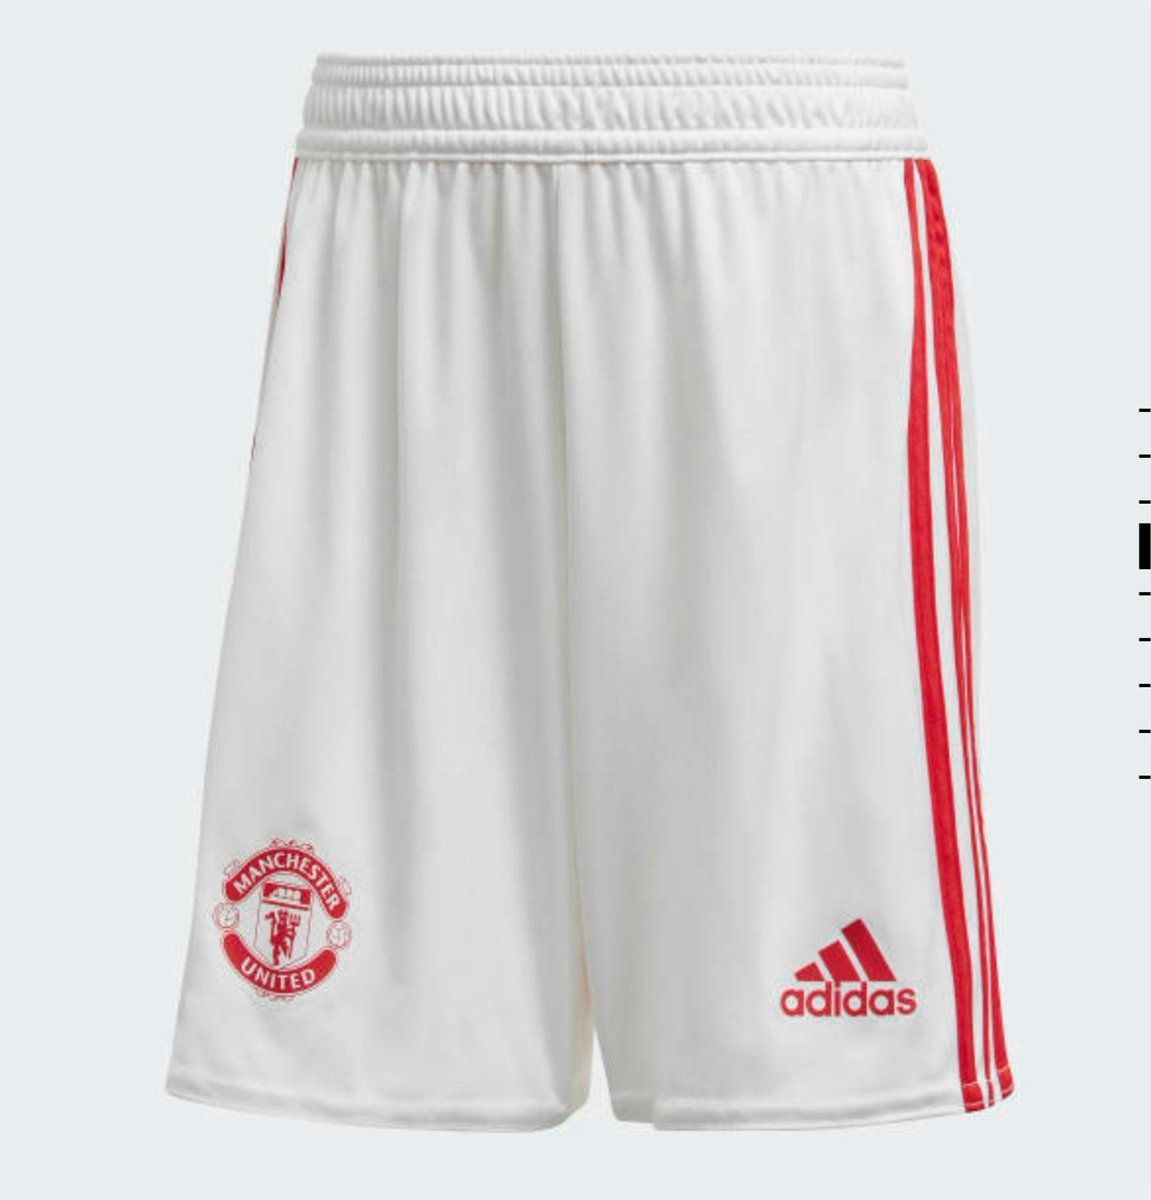 United Zone On Twitter Mufc Players Version Of The Kit Will Feature White Shorts Zebra Shorts Available As A Fan Variant Muzone